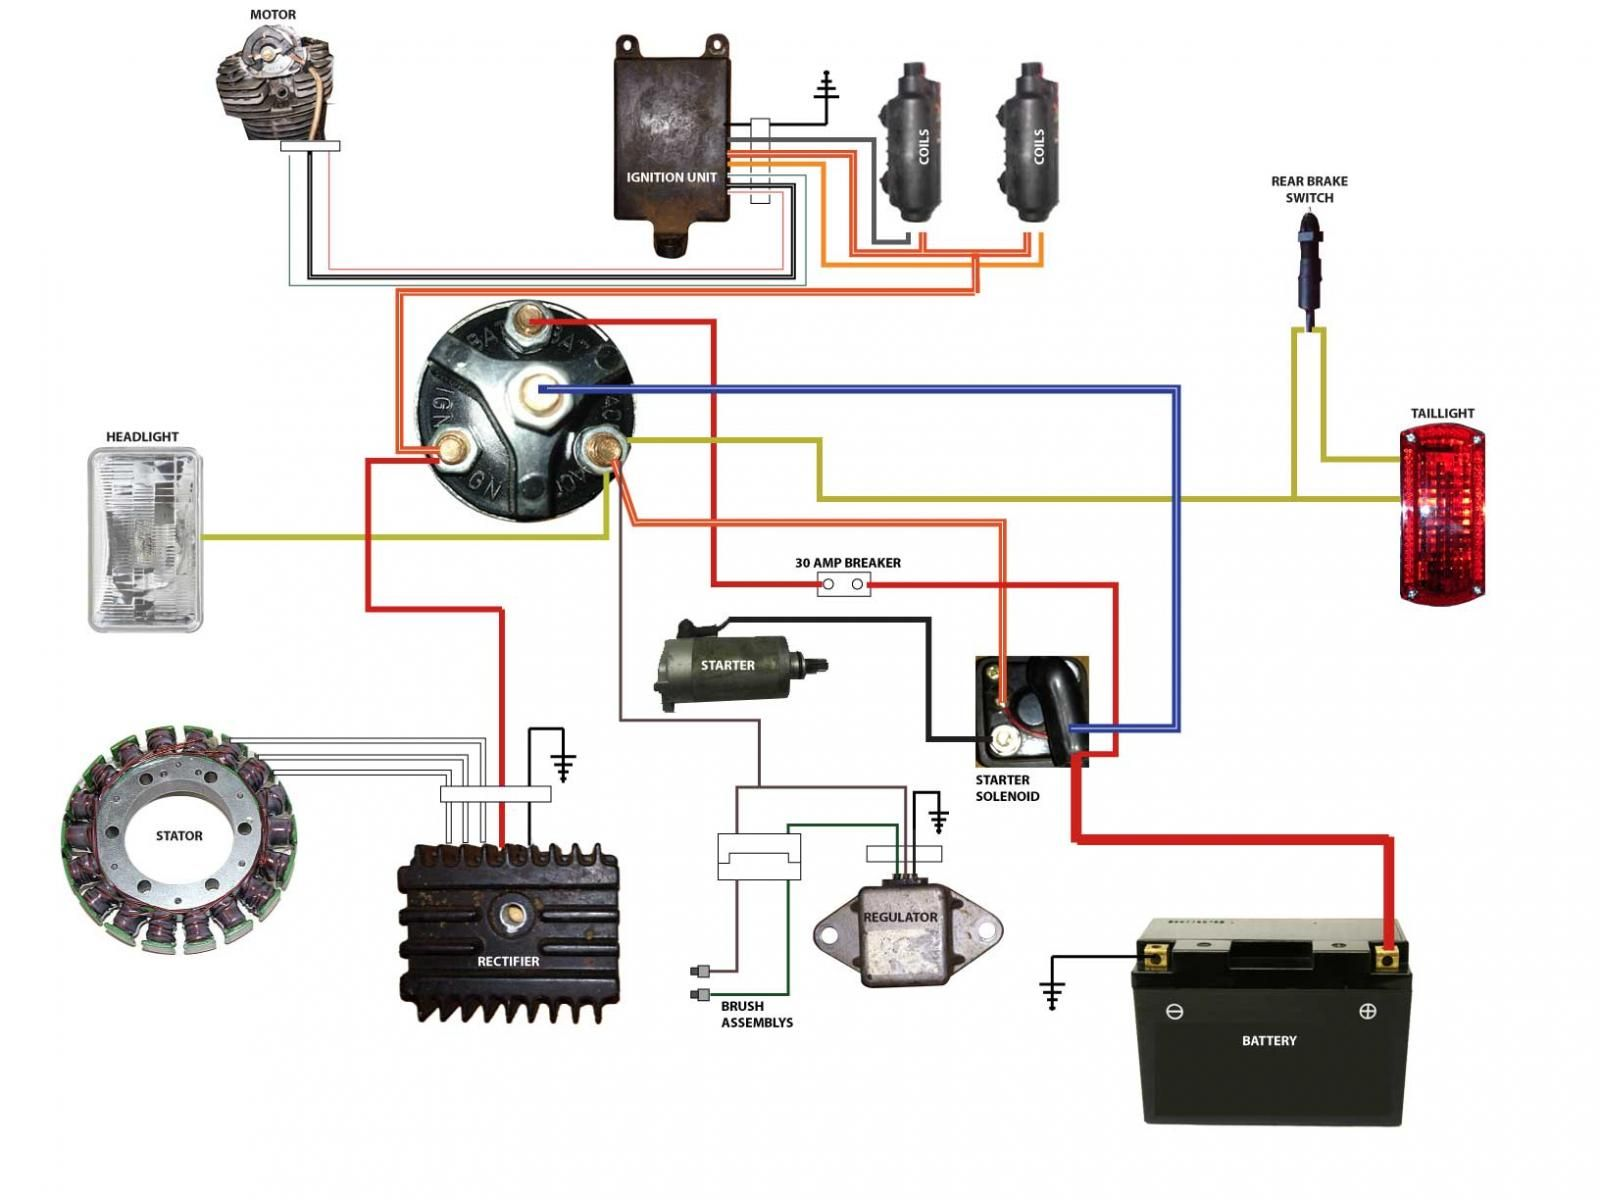 medium resolution of yamaha xs400 wiring wiring diagram mega xs400 special ii engine wiring